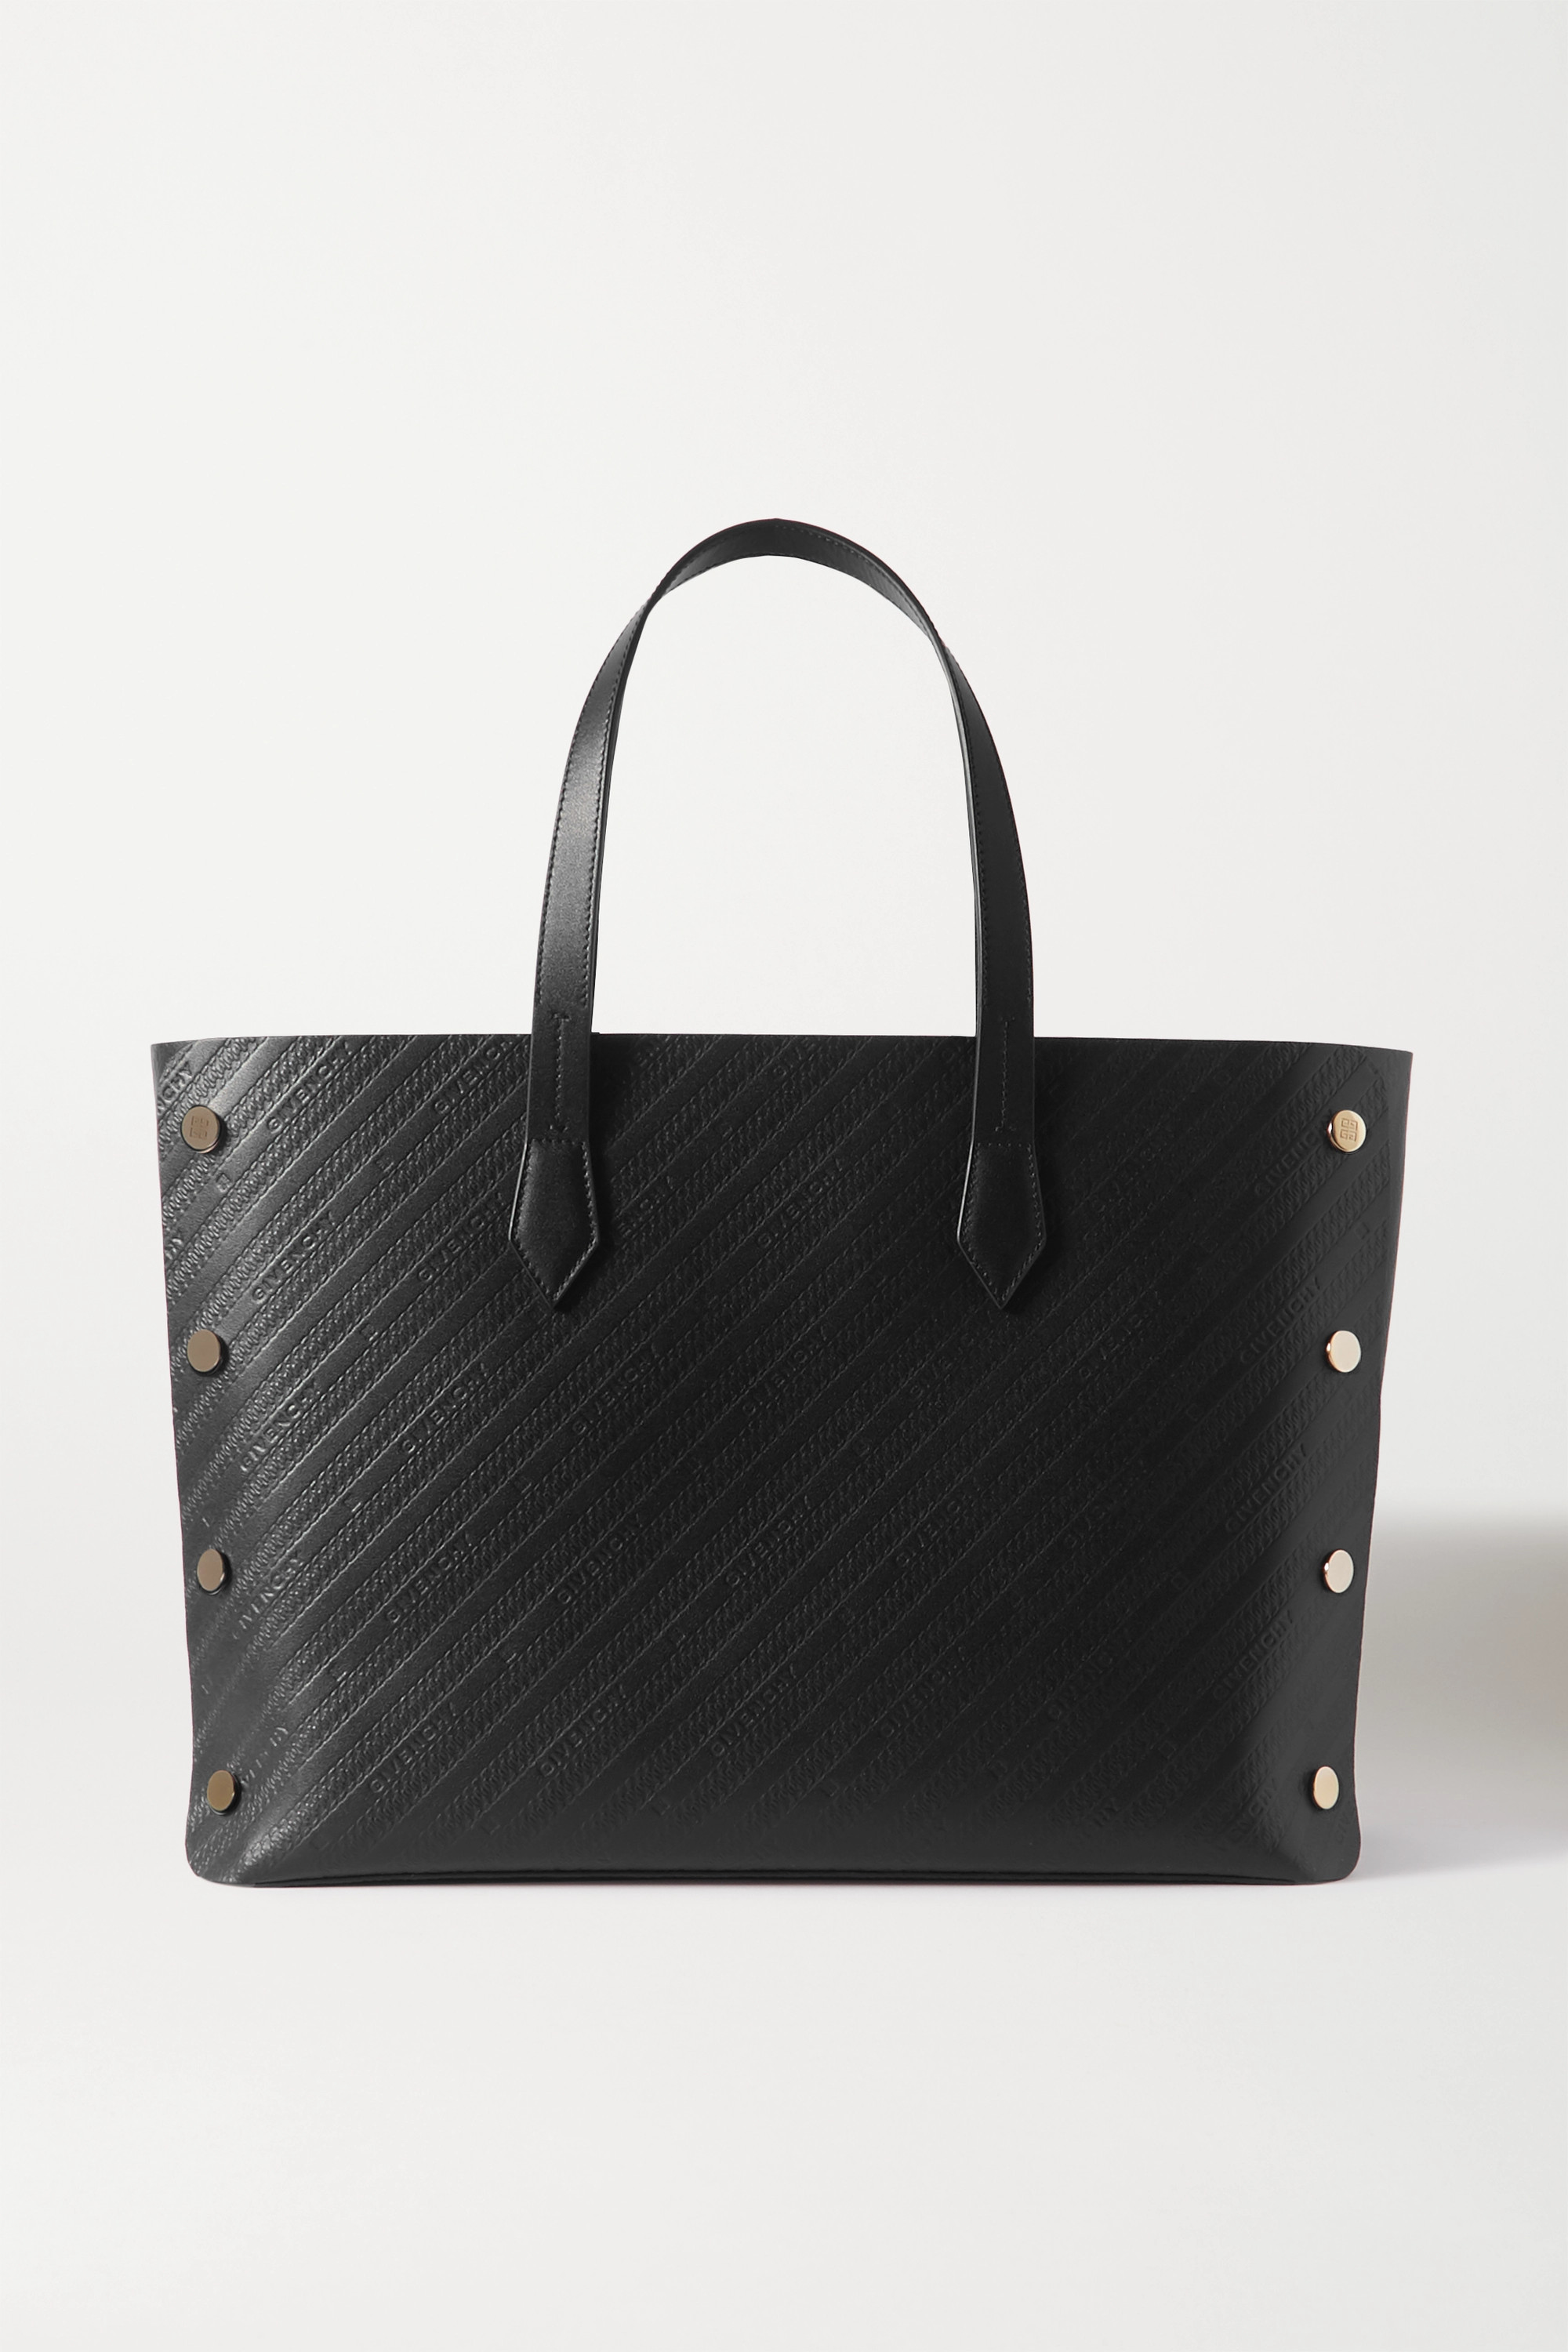 Givenchy Bond medium studded embossed leather tote